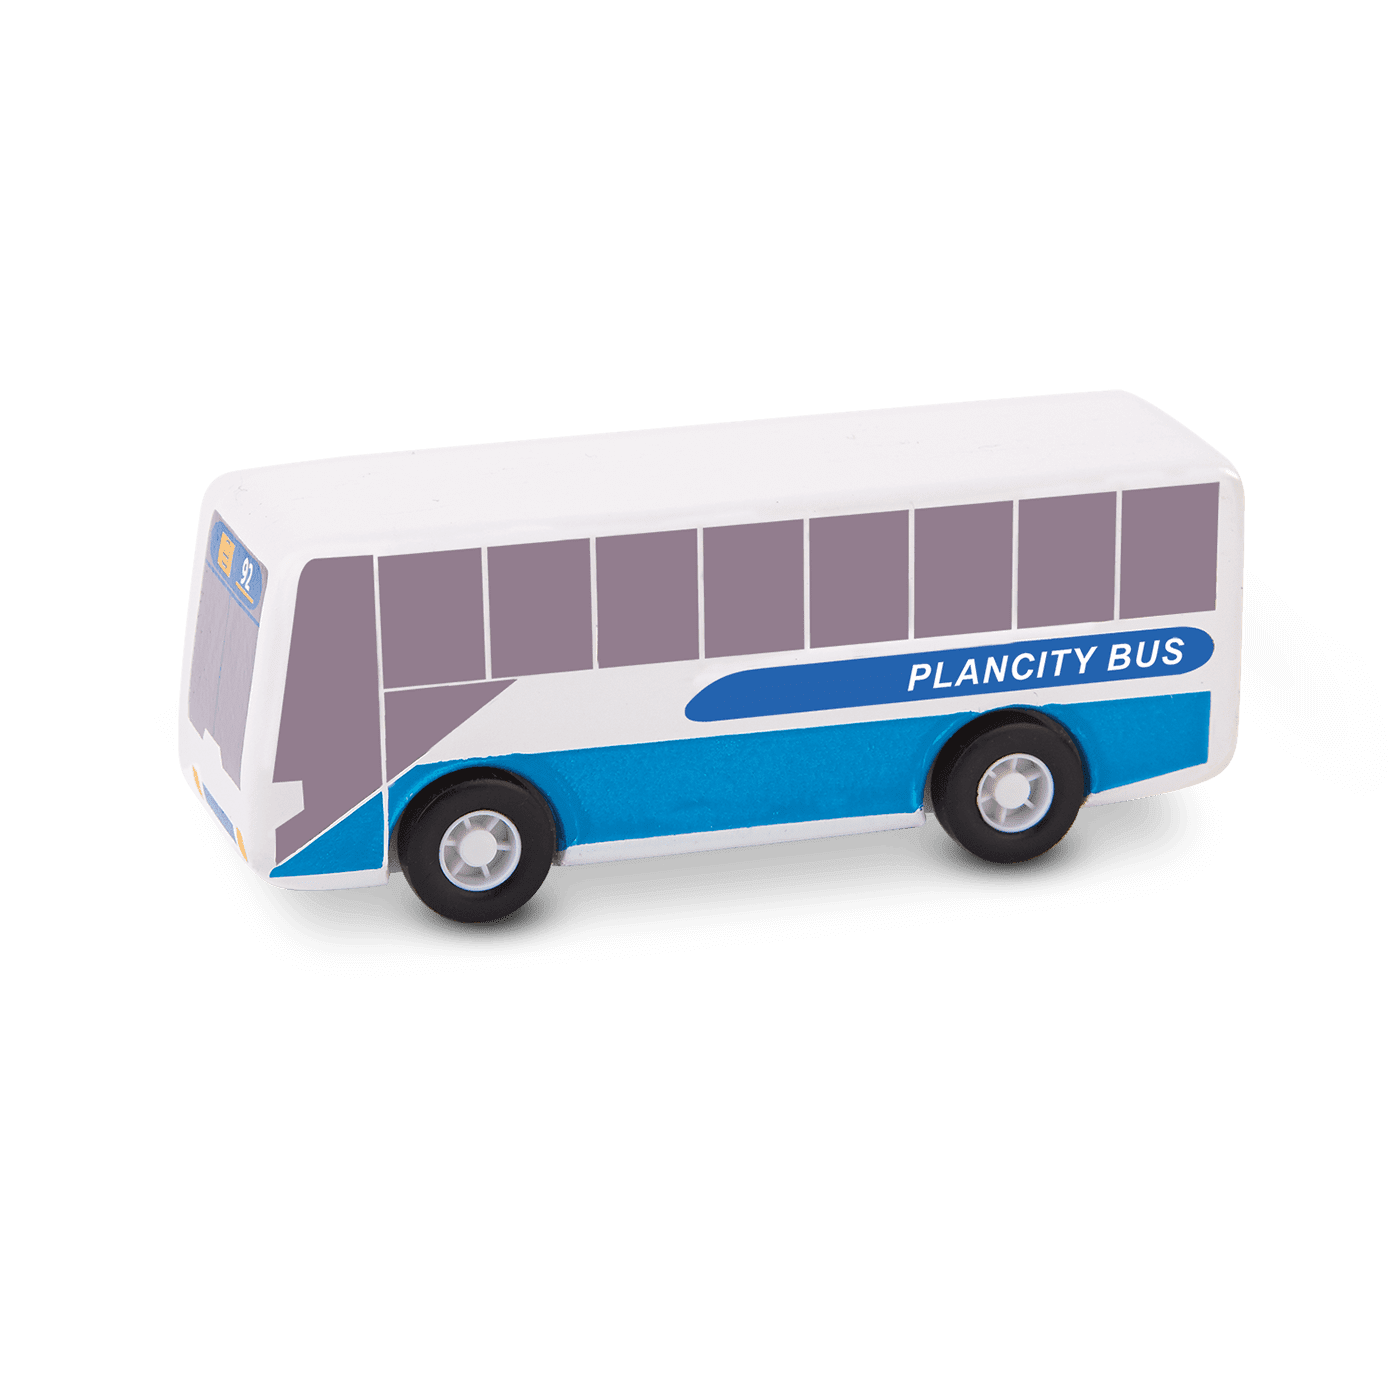 6048_PlanToys_BUS_Pretend_Play_Imagination_Social_Language_and_Communications_Fine_Motor_3yrs_Wooden_toys_Education_toys_Safety_Toys_Non-toxic_0.png